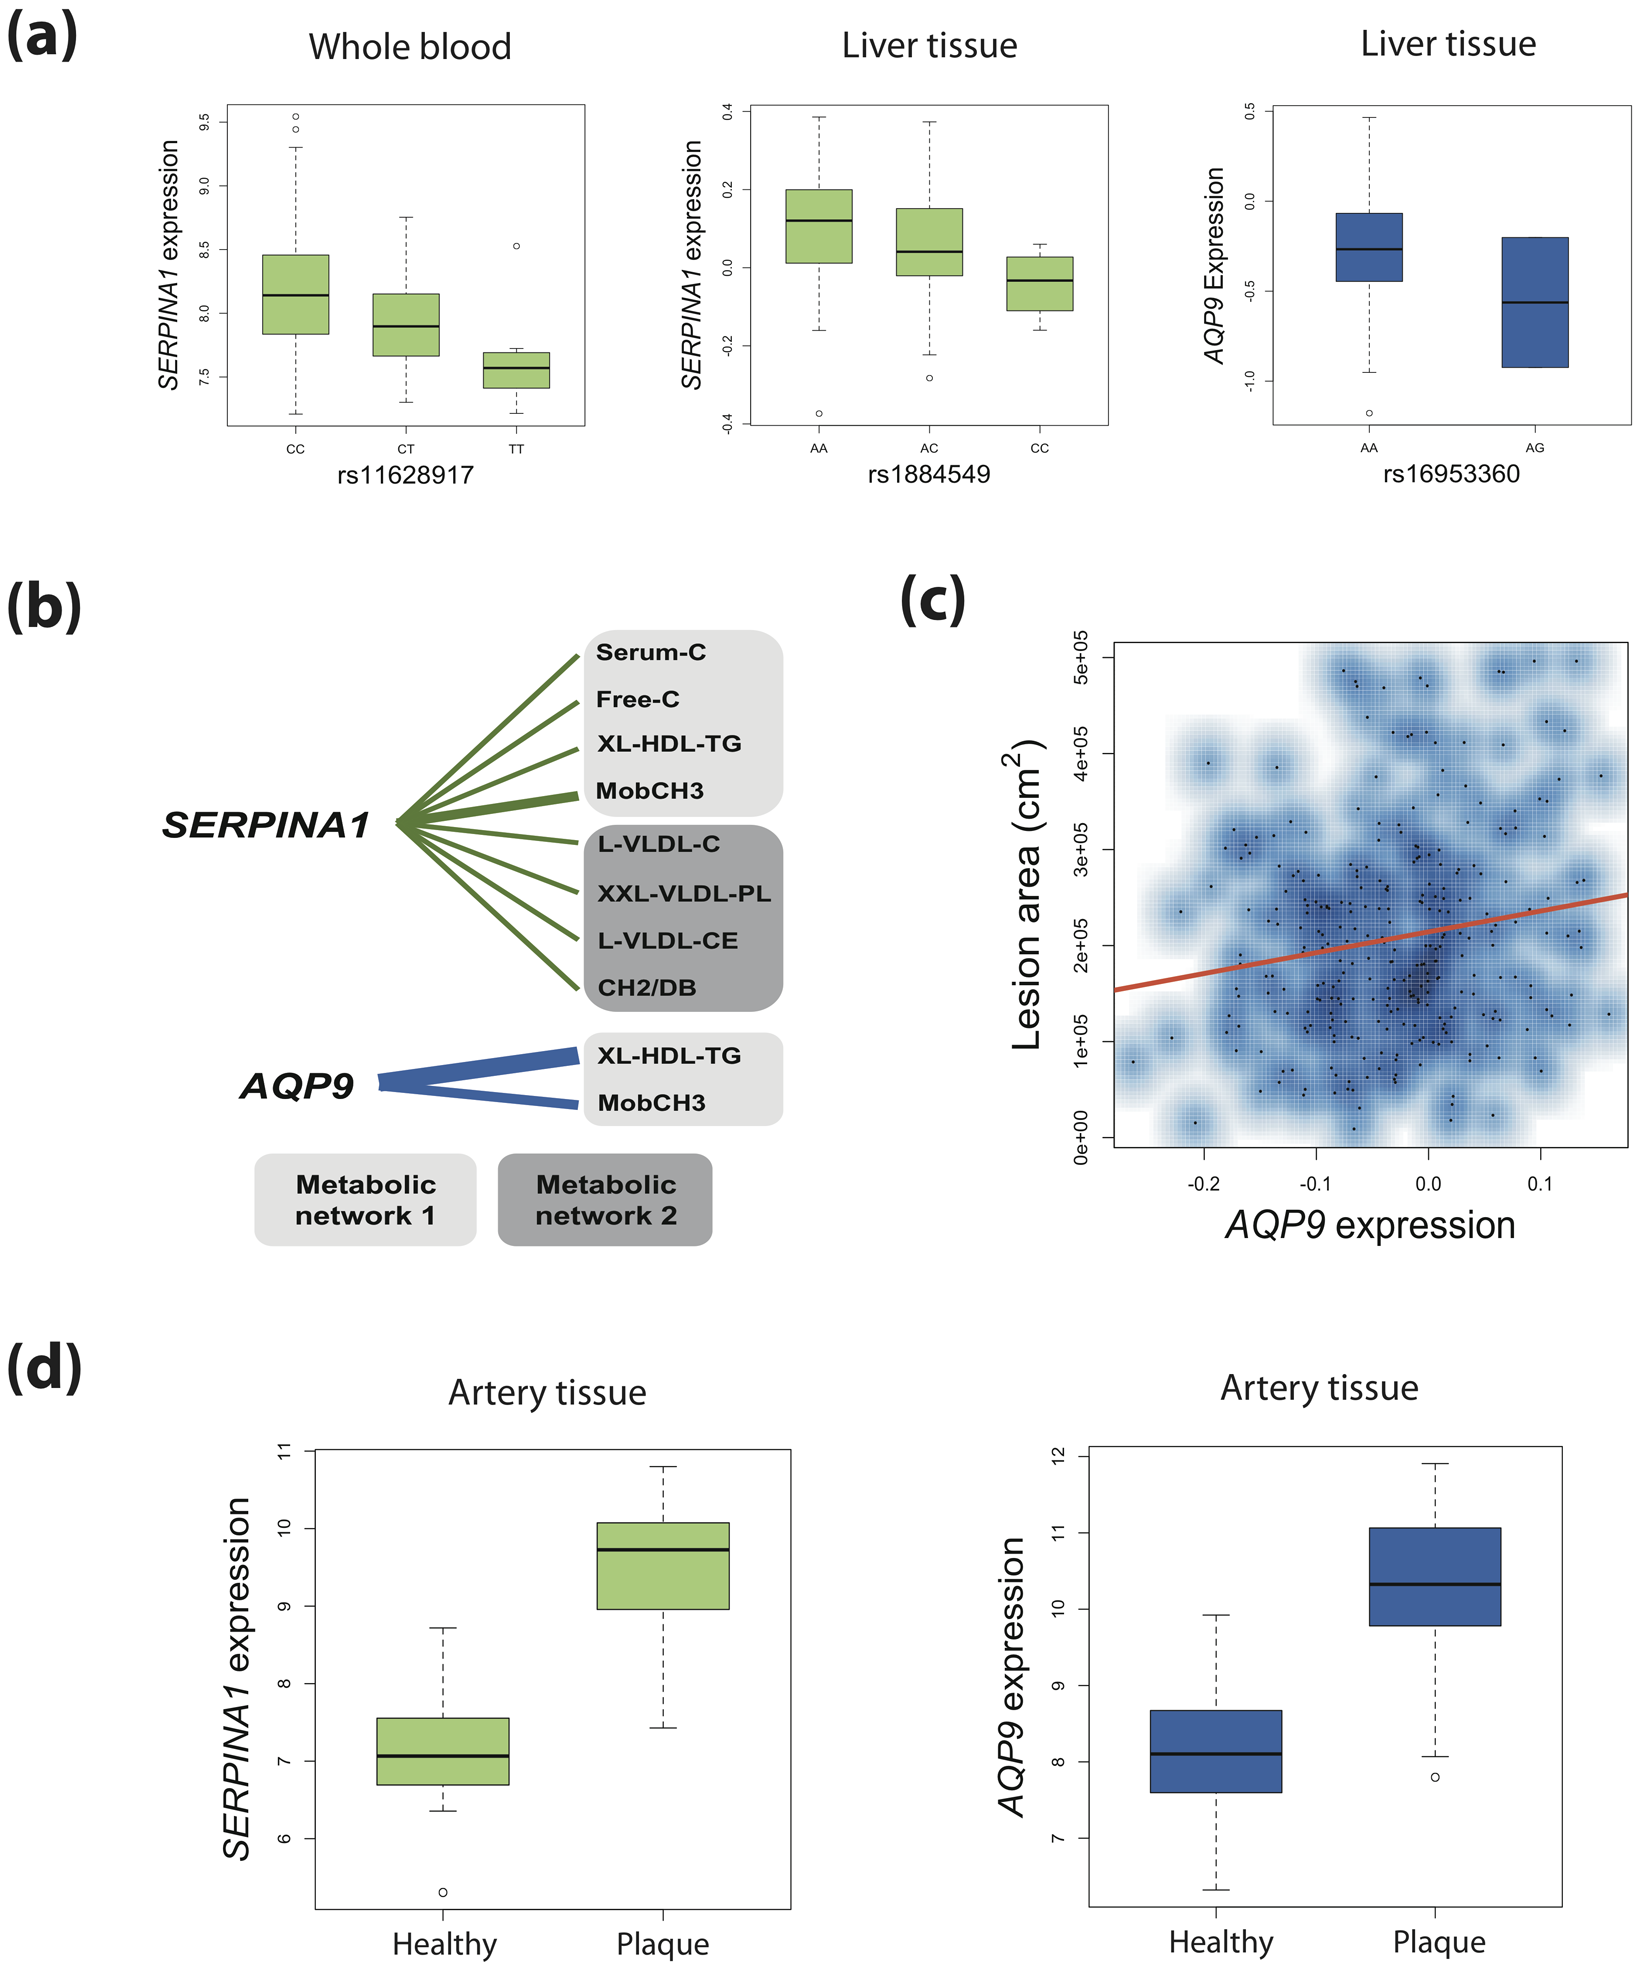 Connecting genetic variation, gene expression, metabolites, and atherosclerosis for <i>SERPINA1</i> and <i>AQP9</i>.